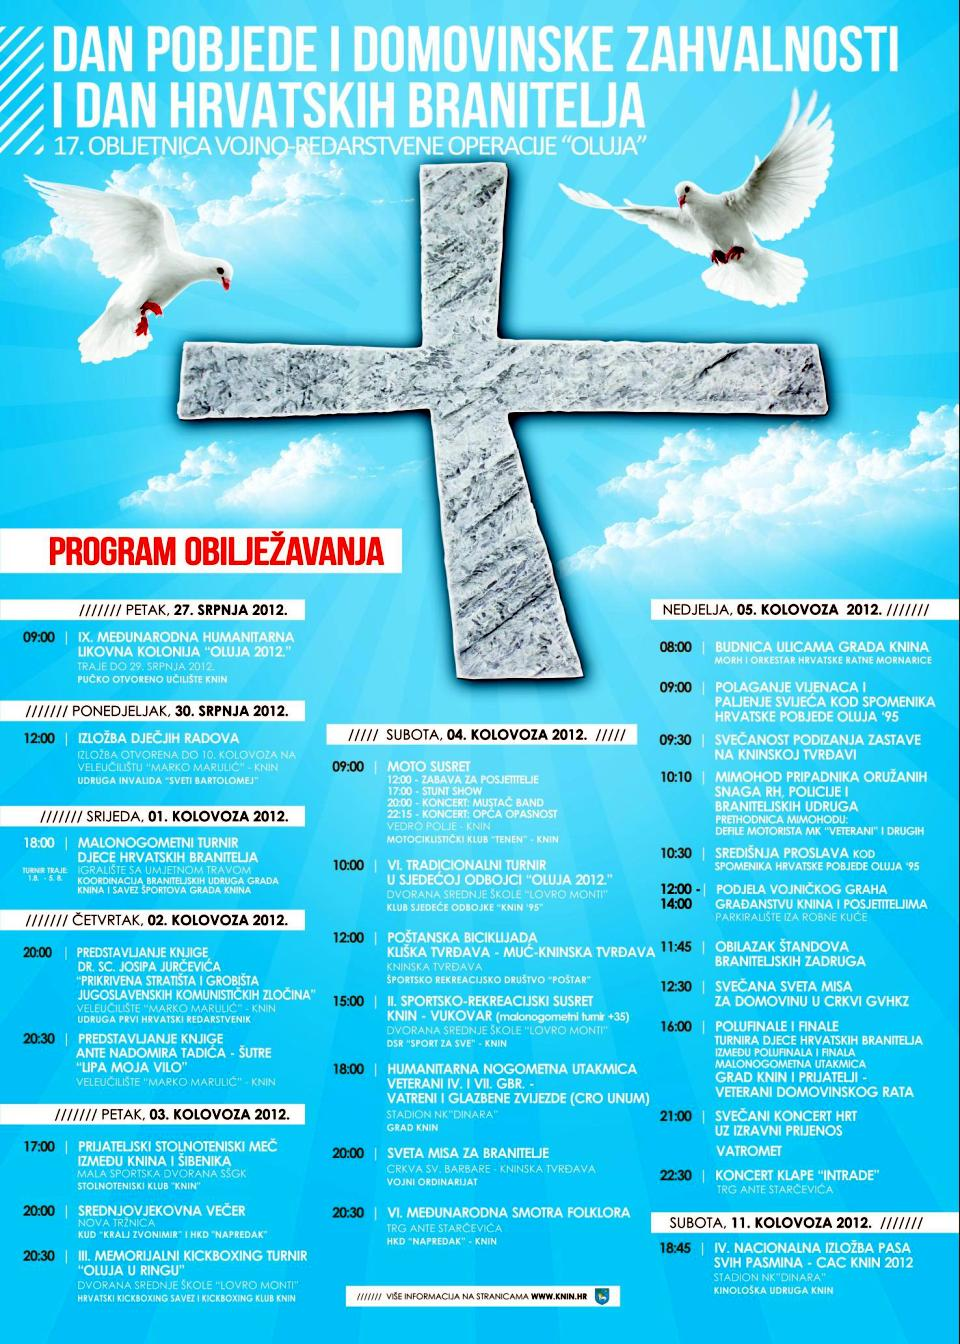 2012 08 05 program obiljezavanja knin